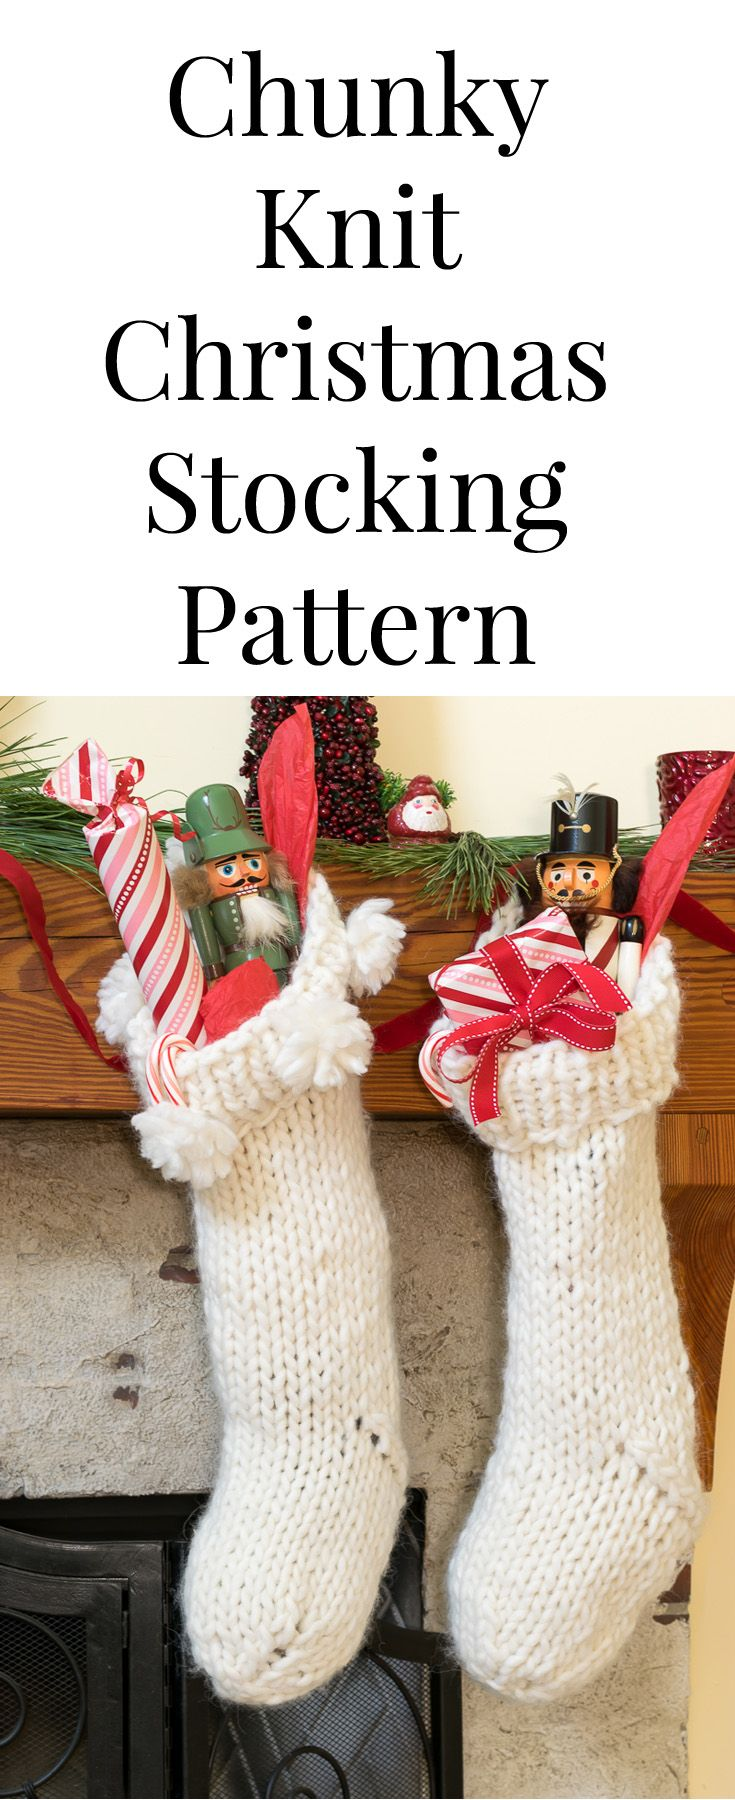 Chunky knit christmas stocking pattern knit patterns christmas what is not to love about a handmade chunky knit christmas stocking this easy diy bankloansurffo Images